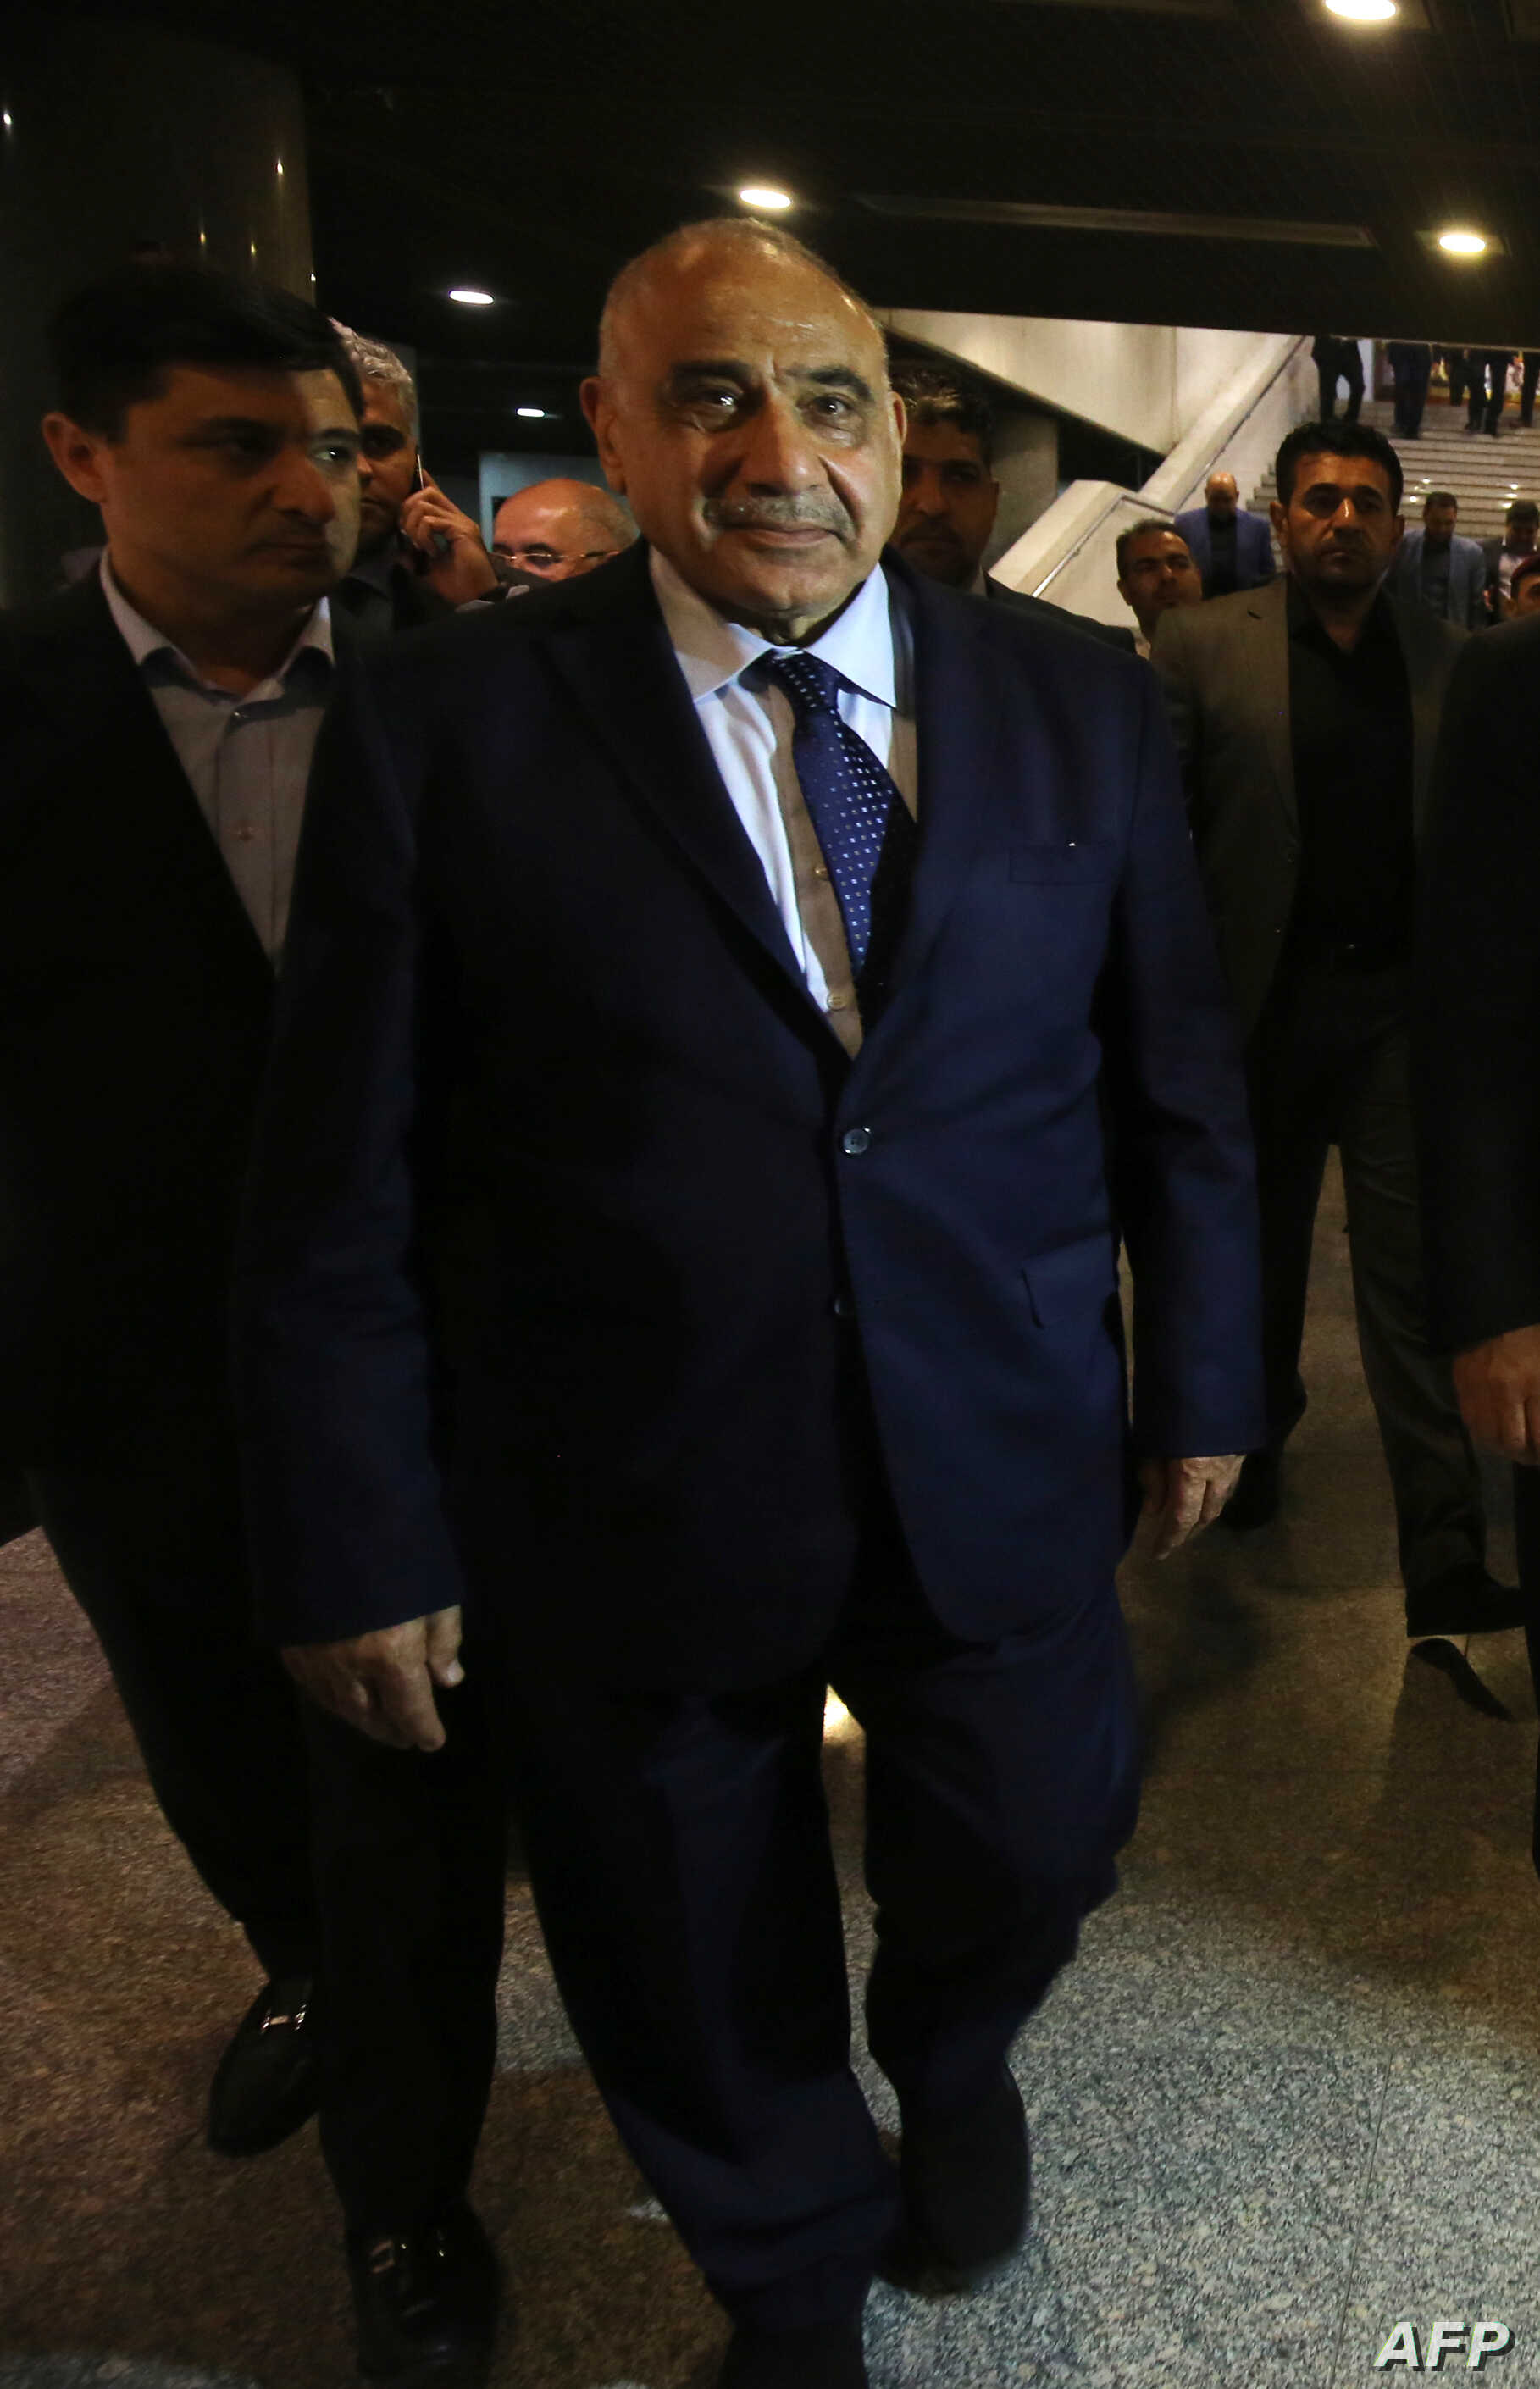 Iraqi Prime Minister Adel Abdul Mahdi walks out of the Parliament in Baghdad on Oct. 2, 2018.